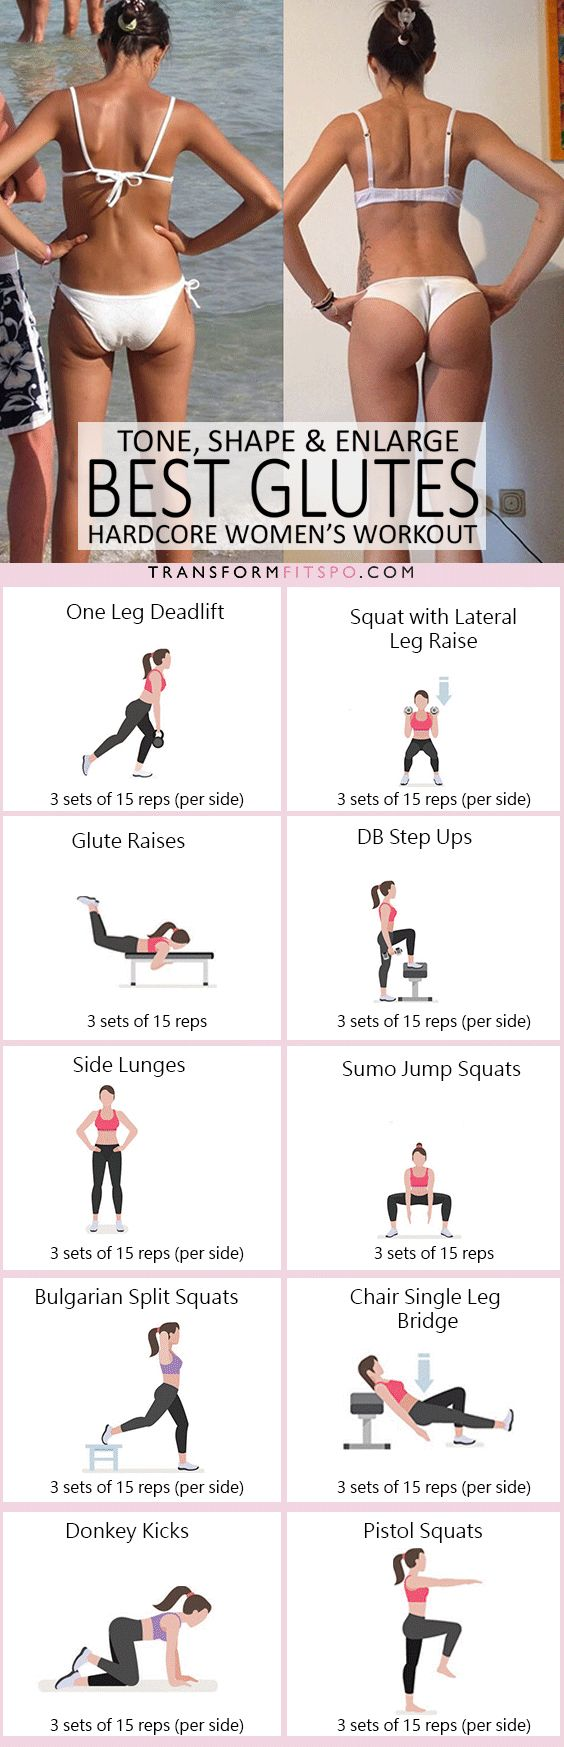 #womensworkout #workout #femalefitness Repin and share if this workout gave you a big bum! Click the pin for the full workout.